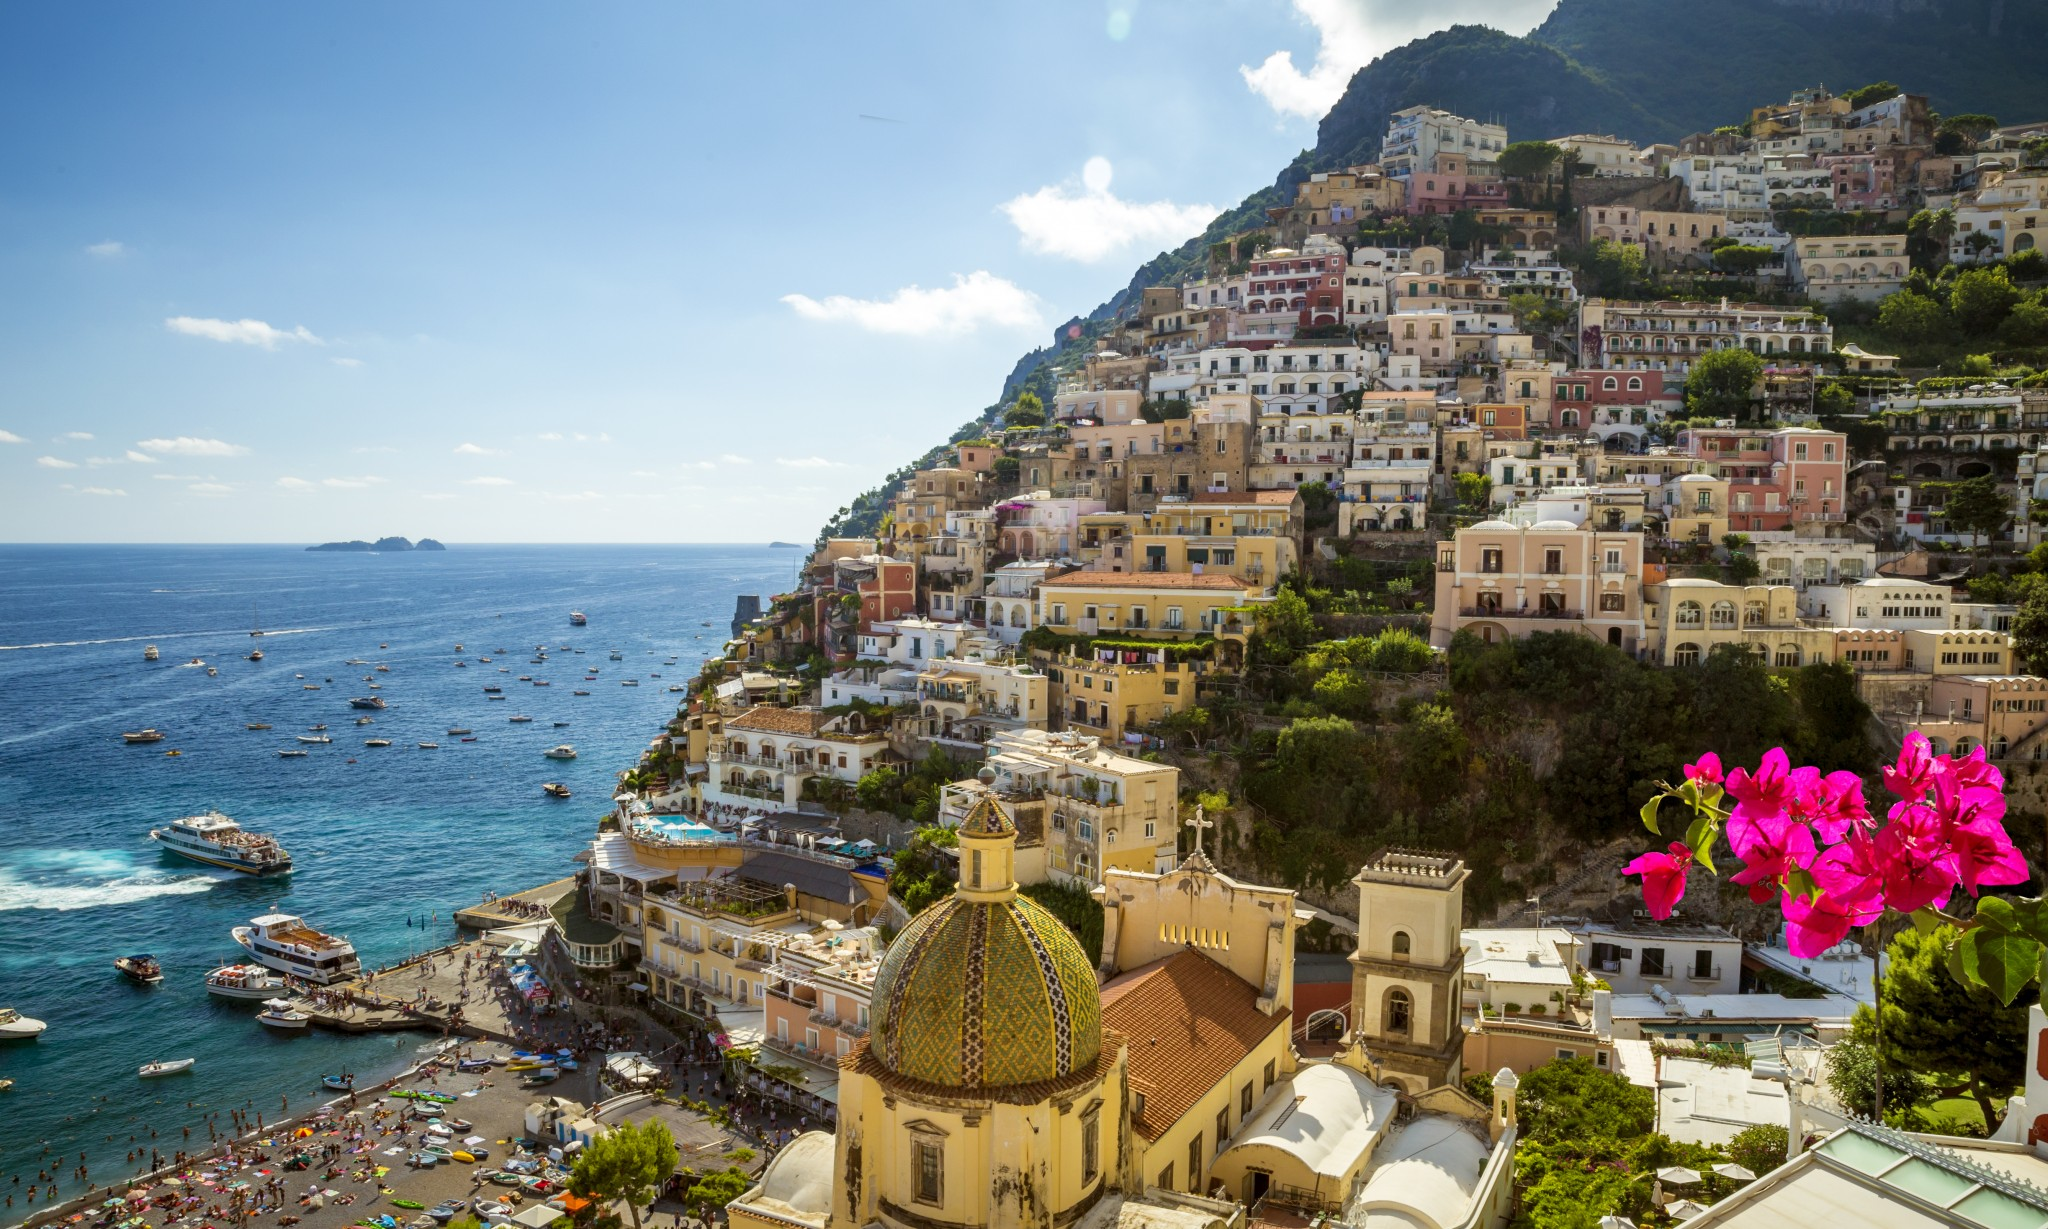 Fly direct from the United States to the Amalfi Coast, Italy on United Airlines.